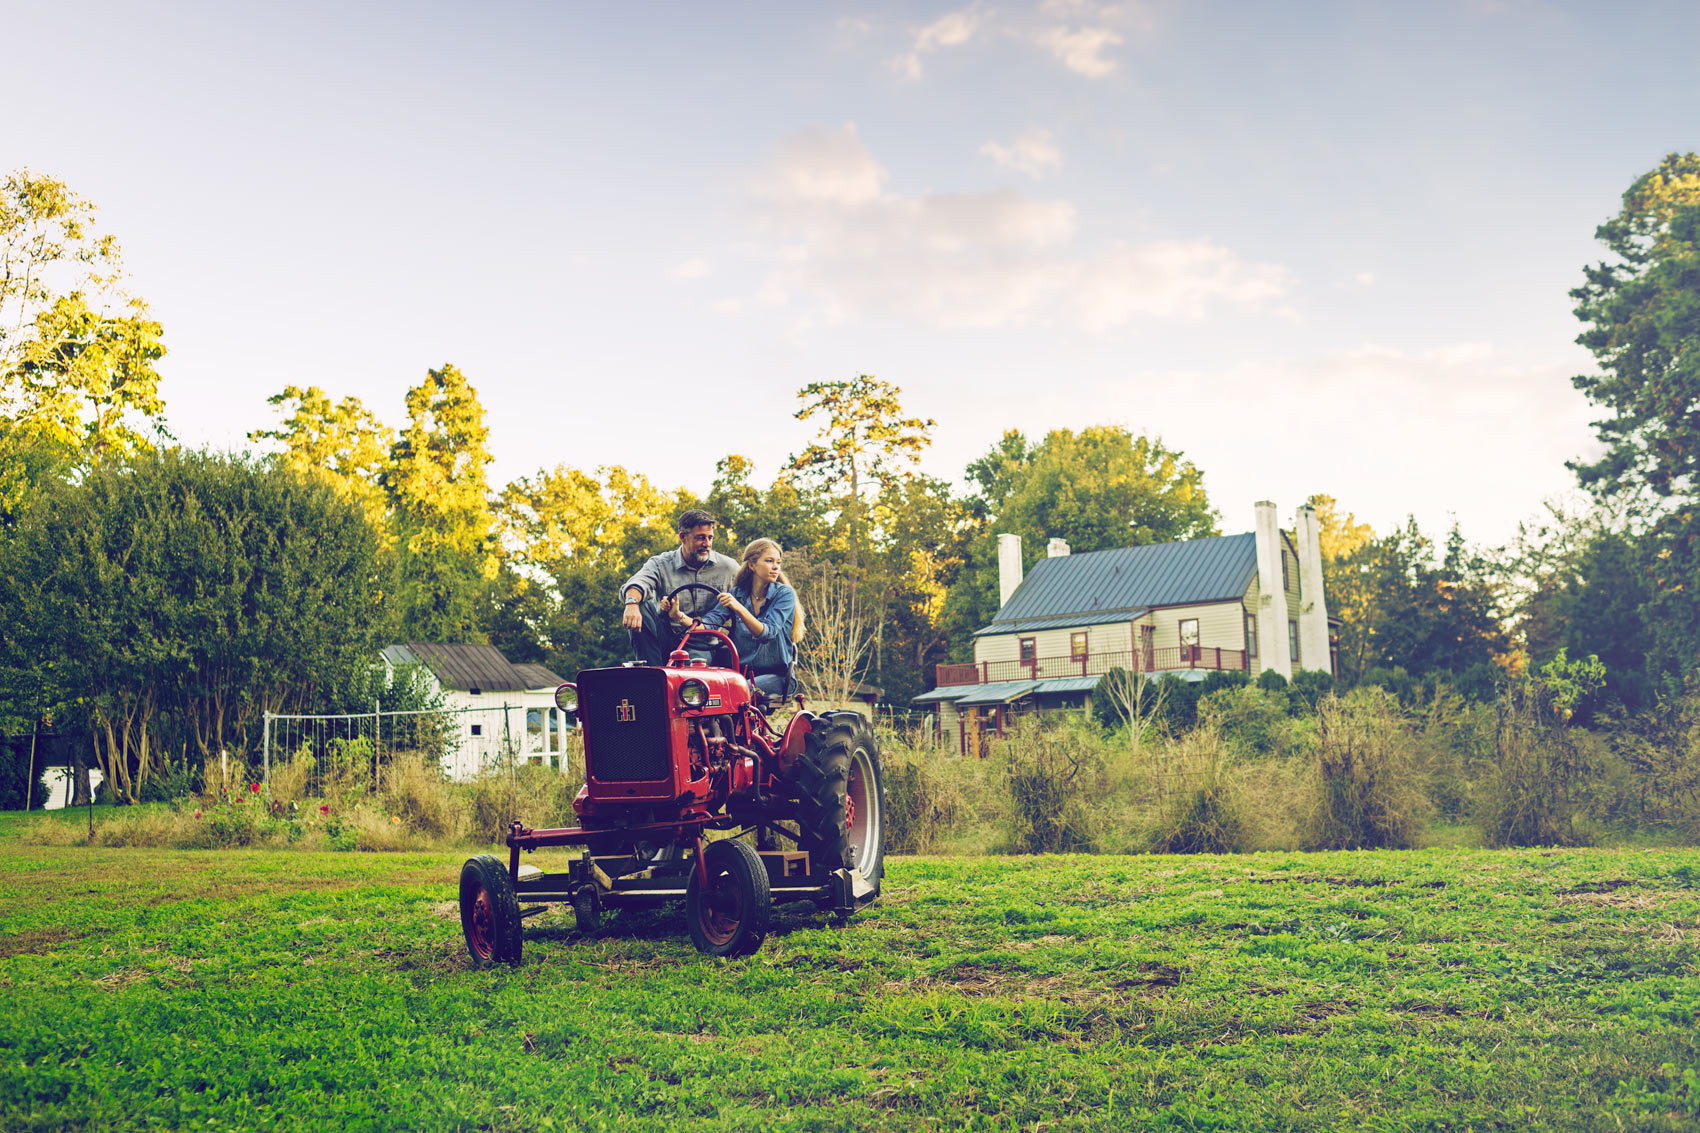 tractor driving lessons at farm for washington dc commercial photography